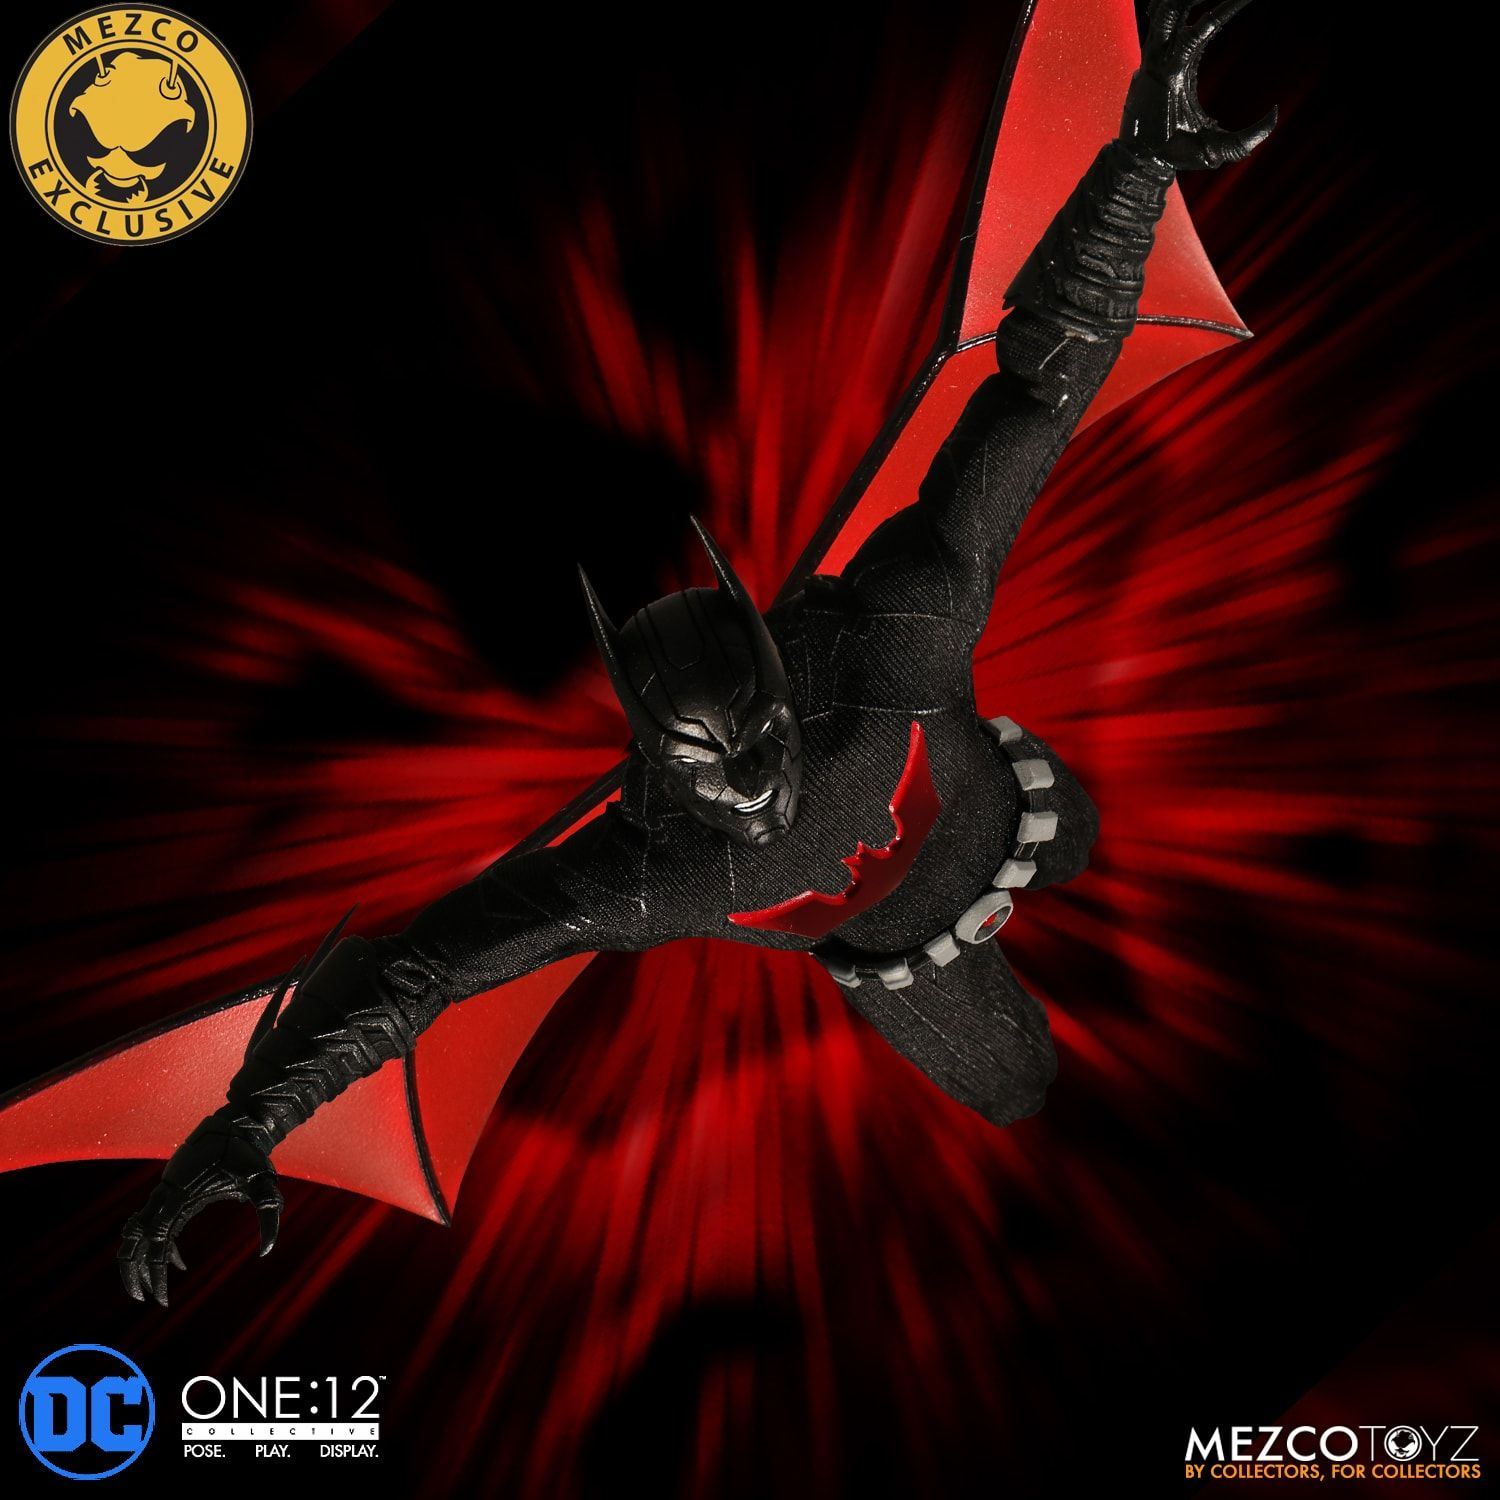 The One: 12 Collective Batman Beyond is now available for pre-order from Mezco Toys.